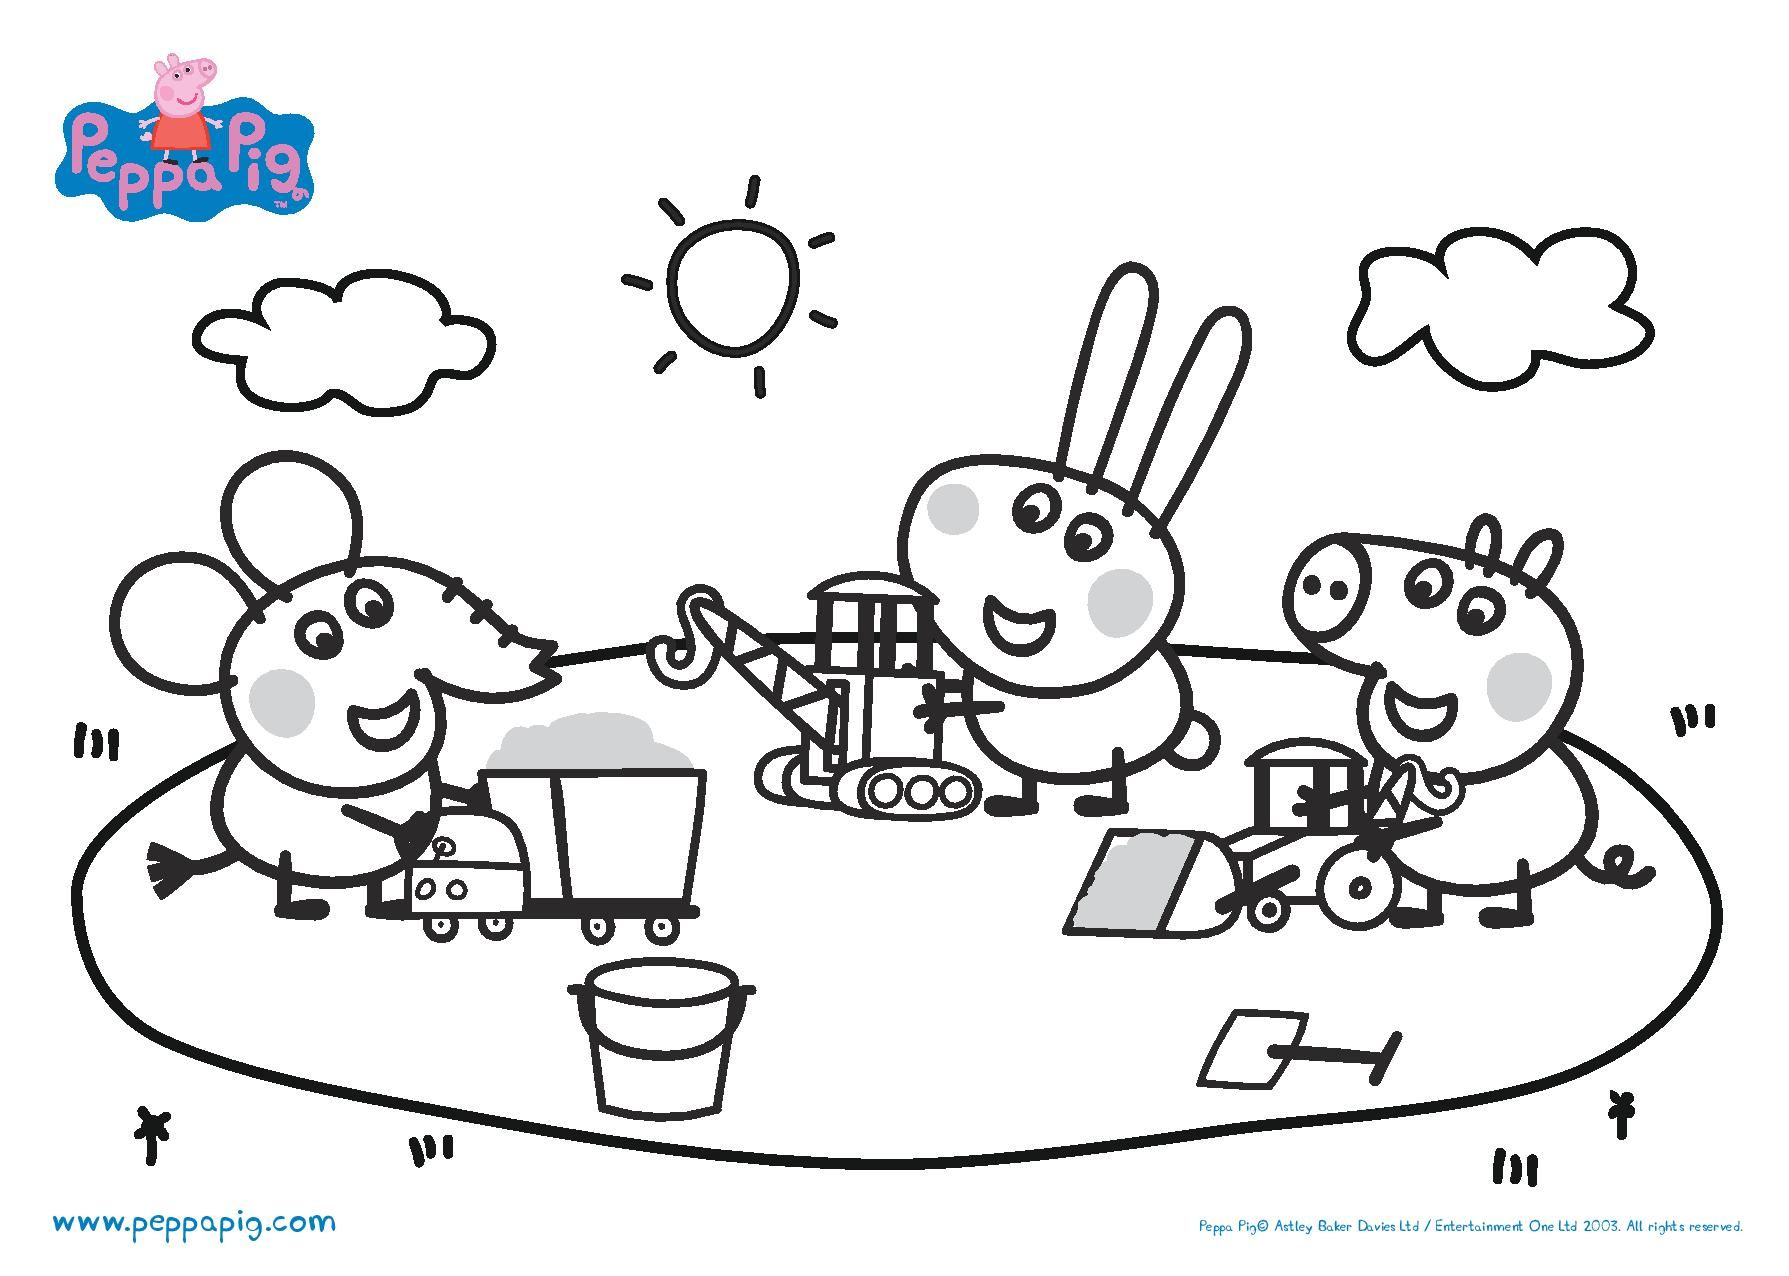 Świnka Peppa #9 - Kolorowanki  Peppa pig coloring pages, Peppa